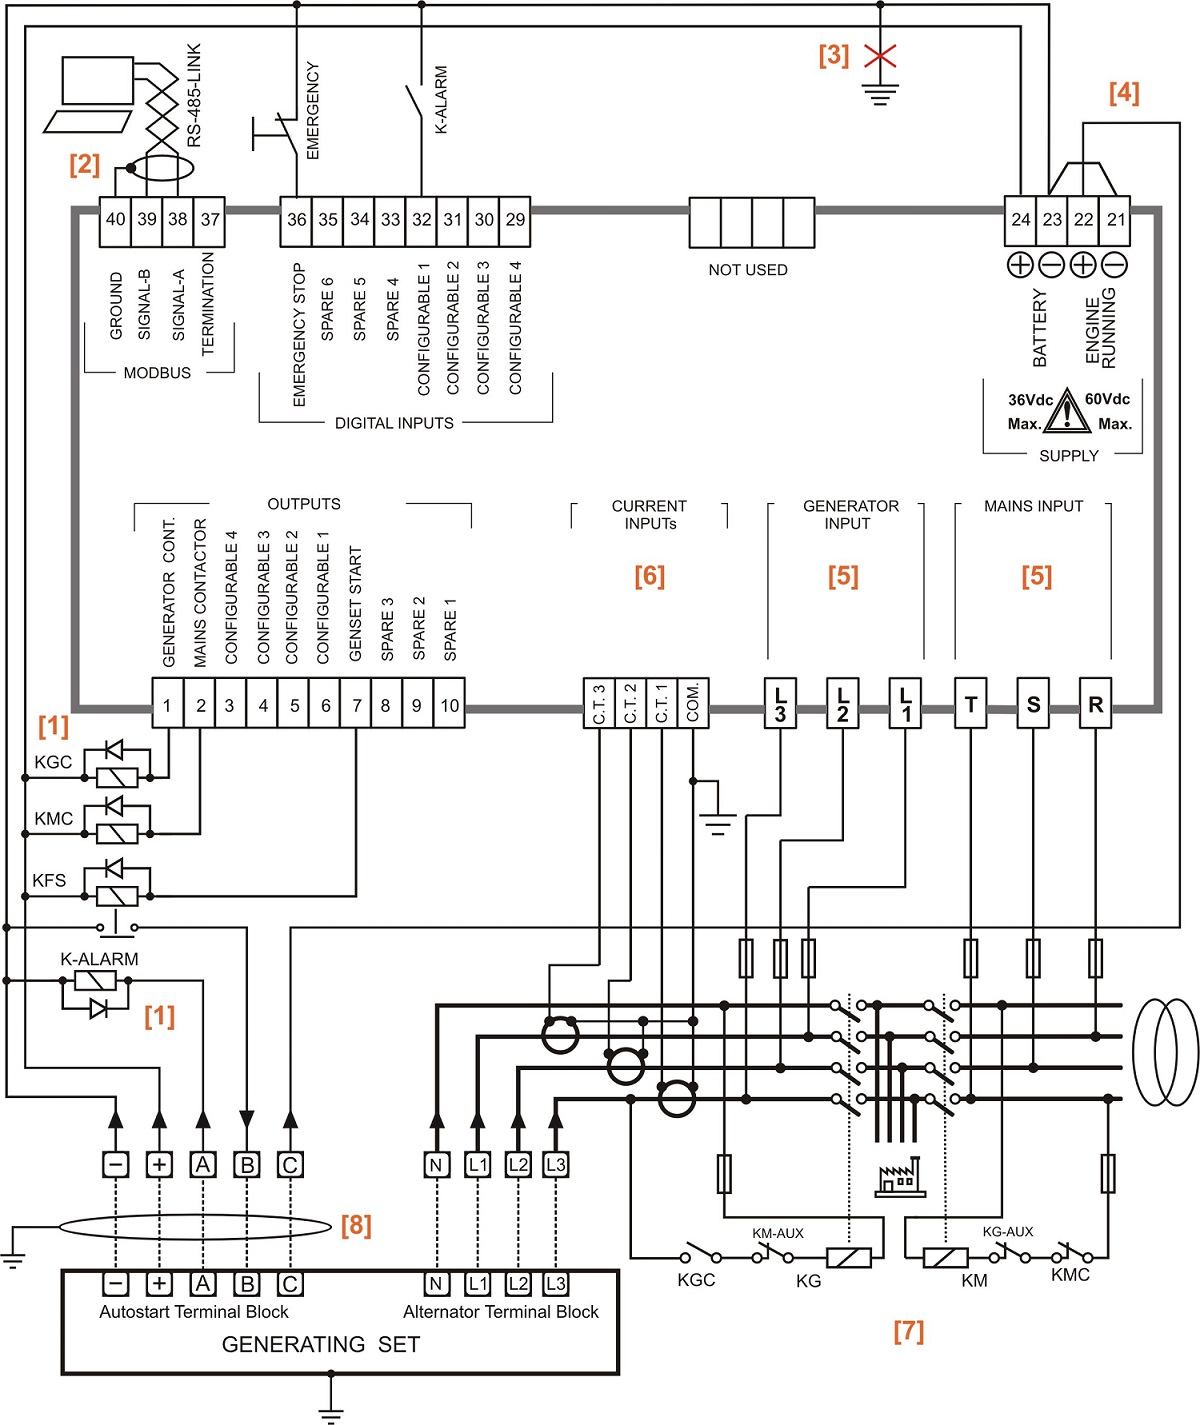 Be28 Automatic Transfer Switch Controller Connections automatic transfer switch circuit diagram genset controller automatic transfer switches for generators wiring diagram at gsmx.co